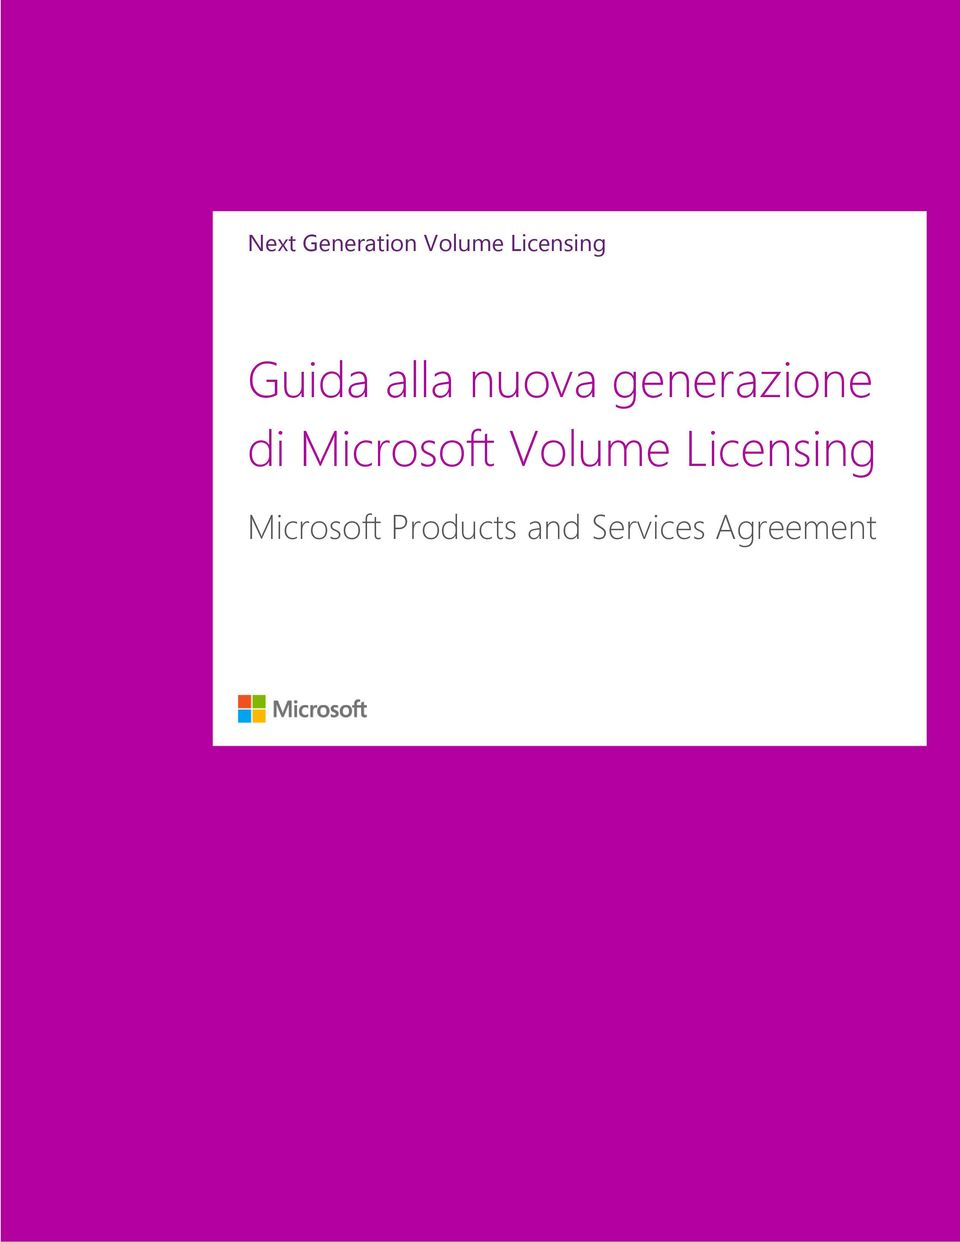 Microsoft Products and Services Agreement Guida